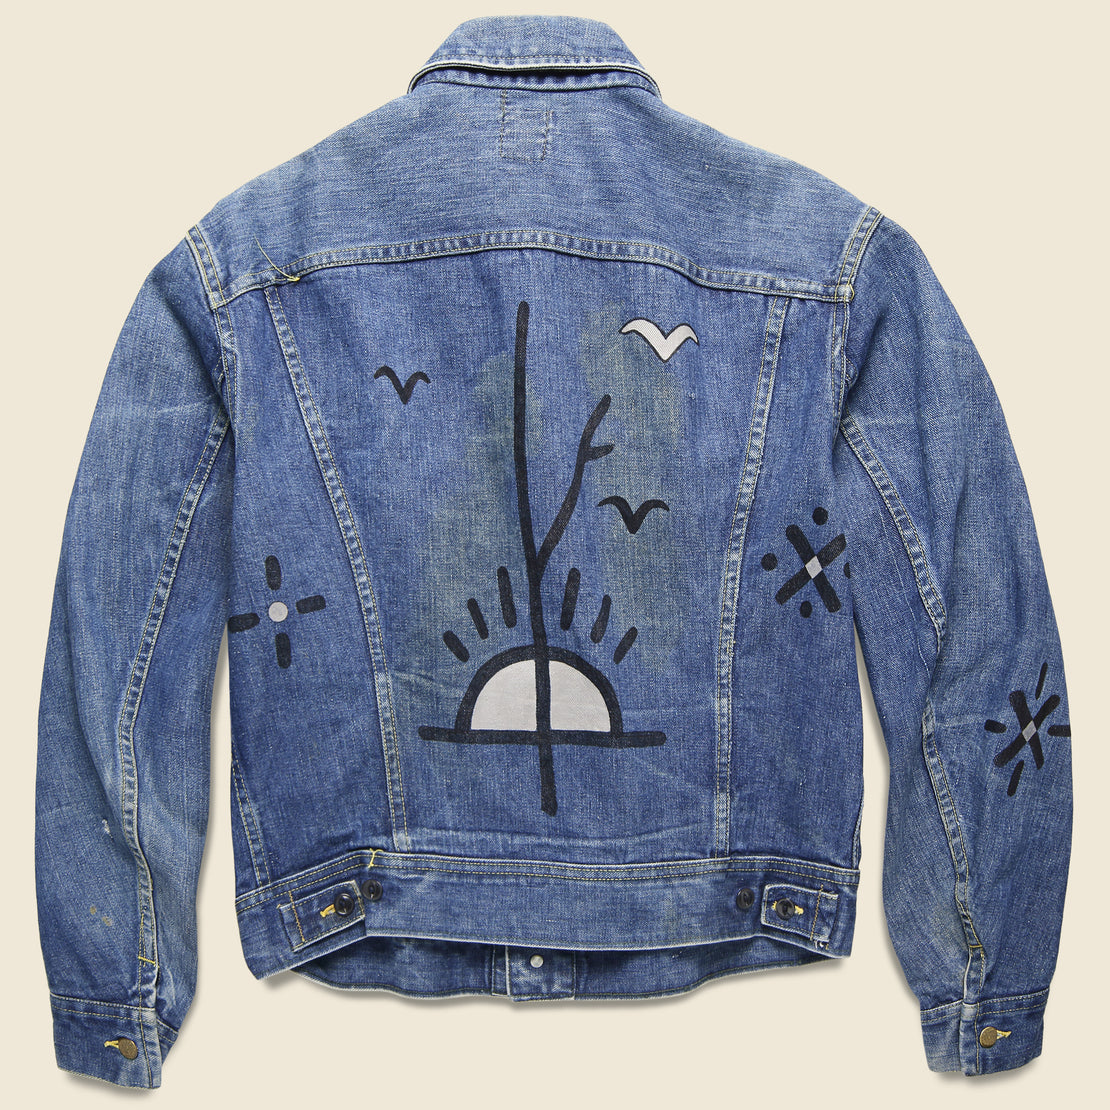 Tom Jean Webb Vintage Lee Rider Jacket - Birds & Sunrise